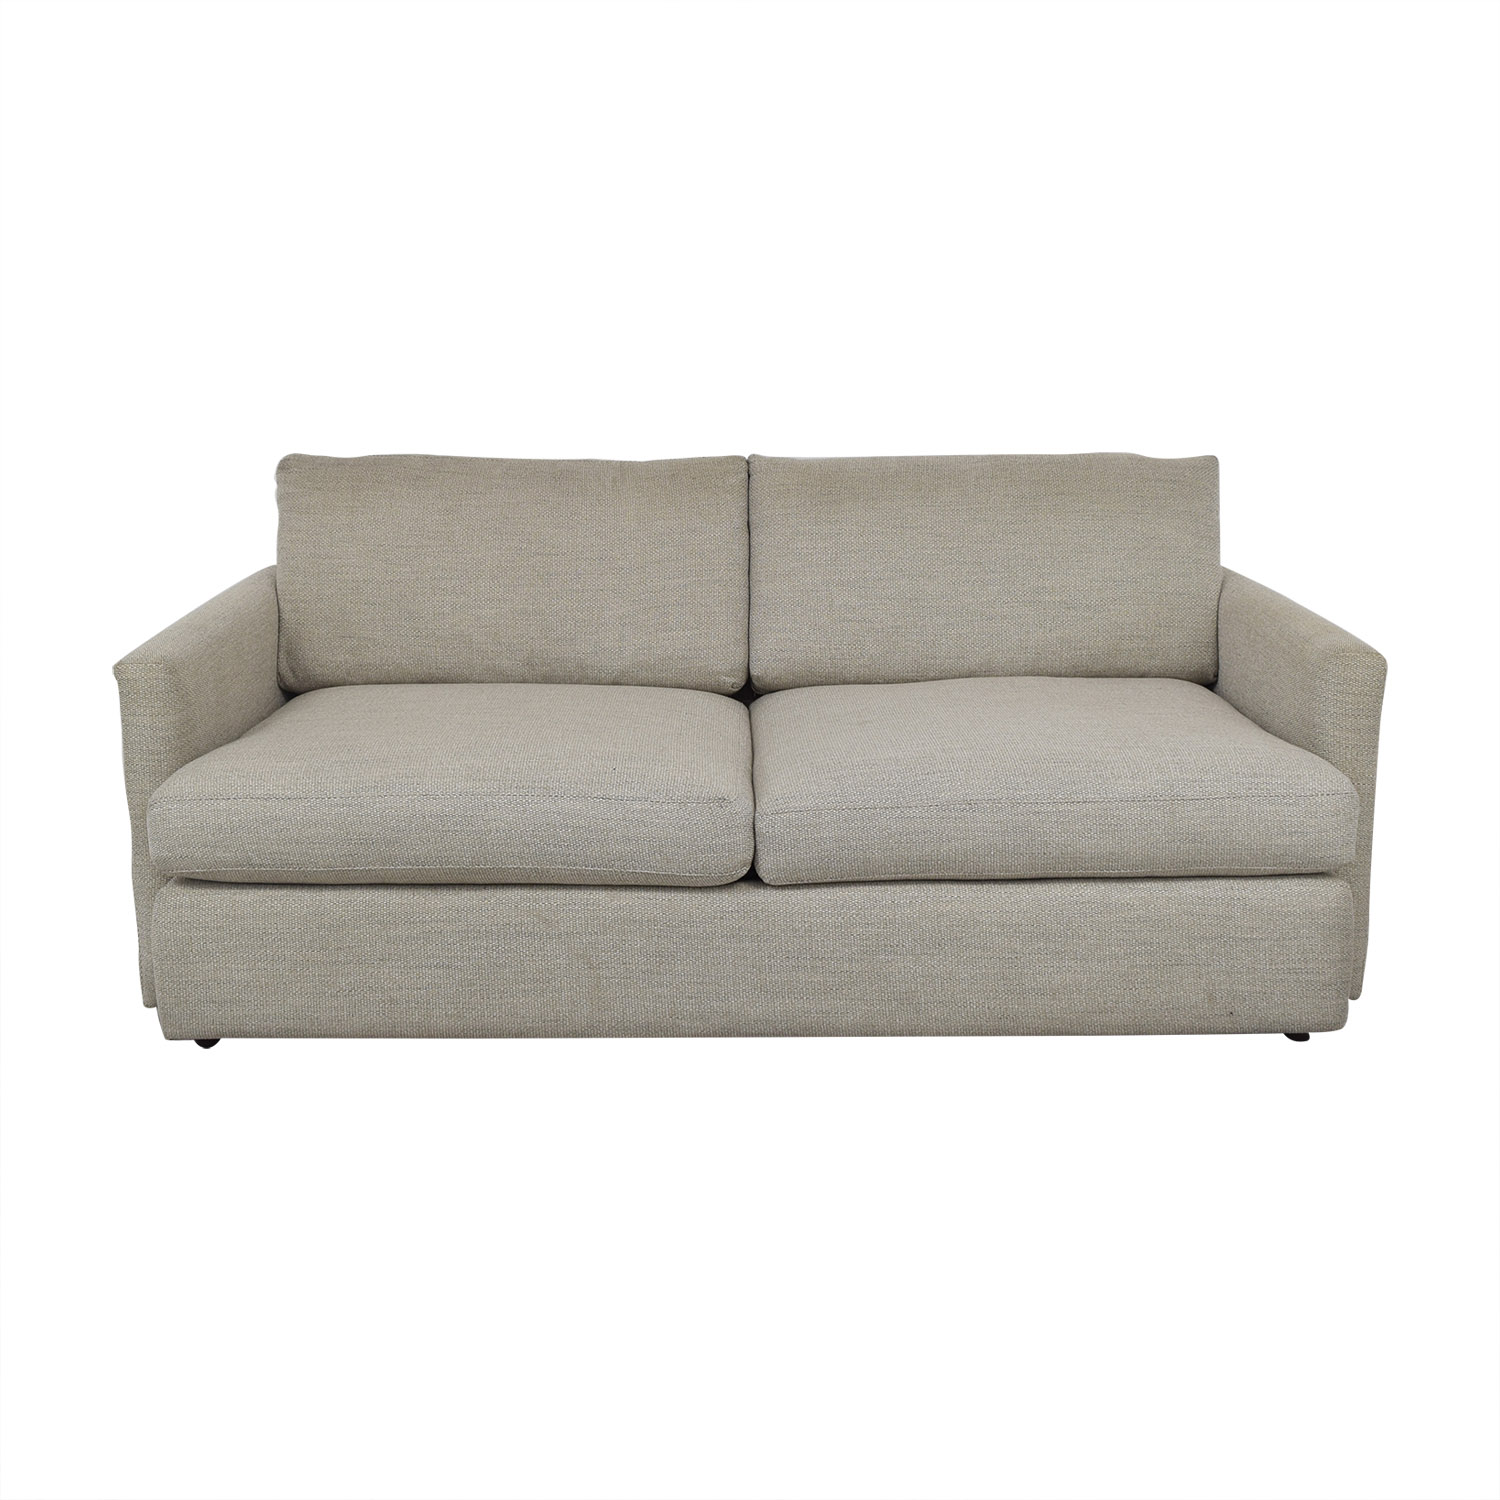 buy Crate & Barrel Lounge Sofa Crate & Barrel Sofas